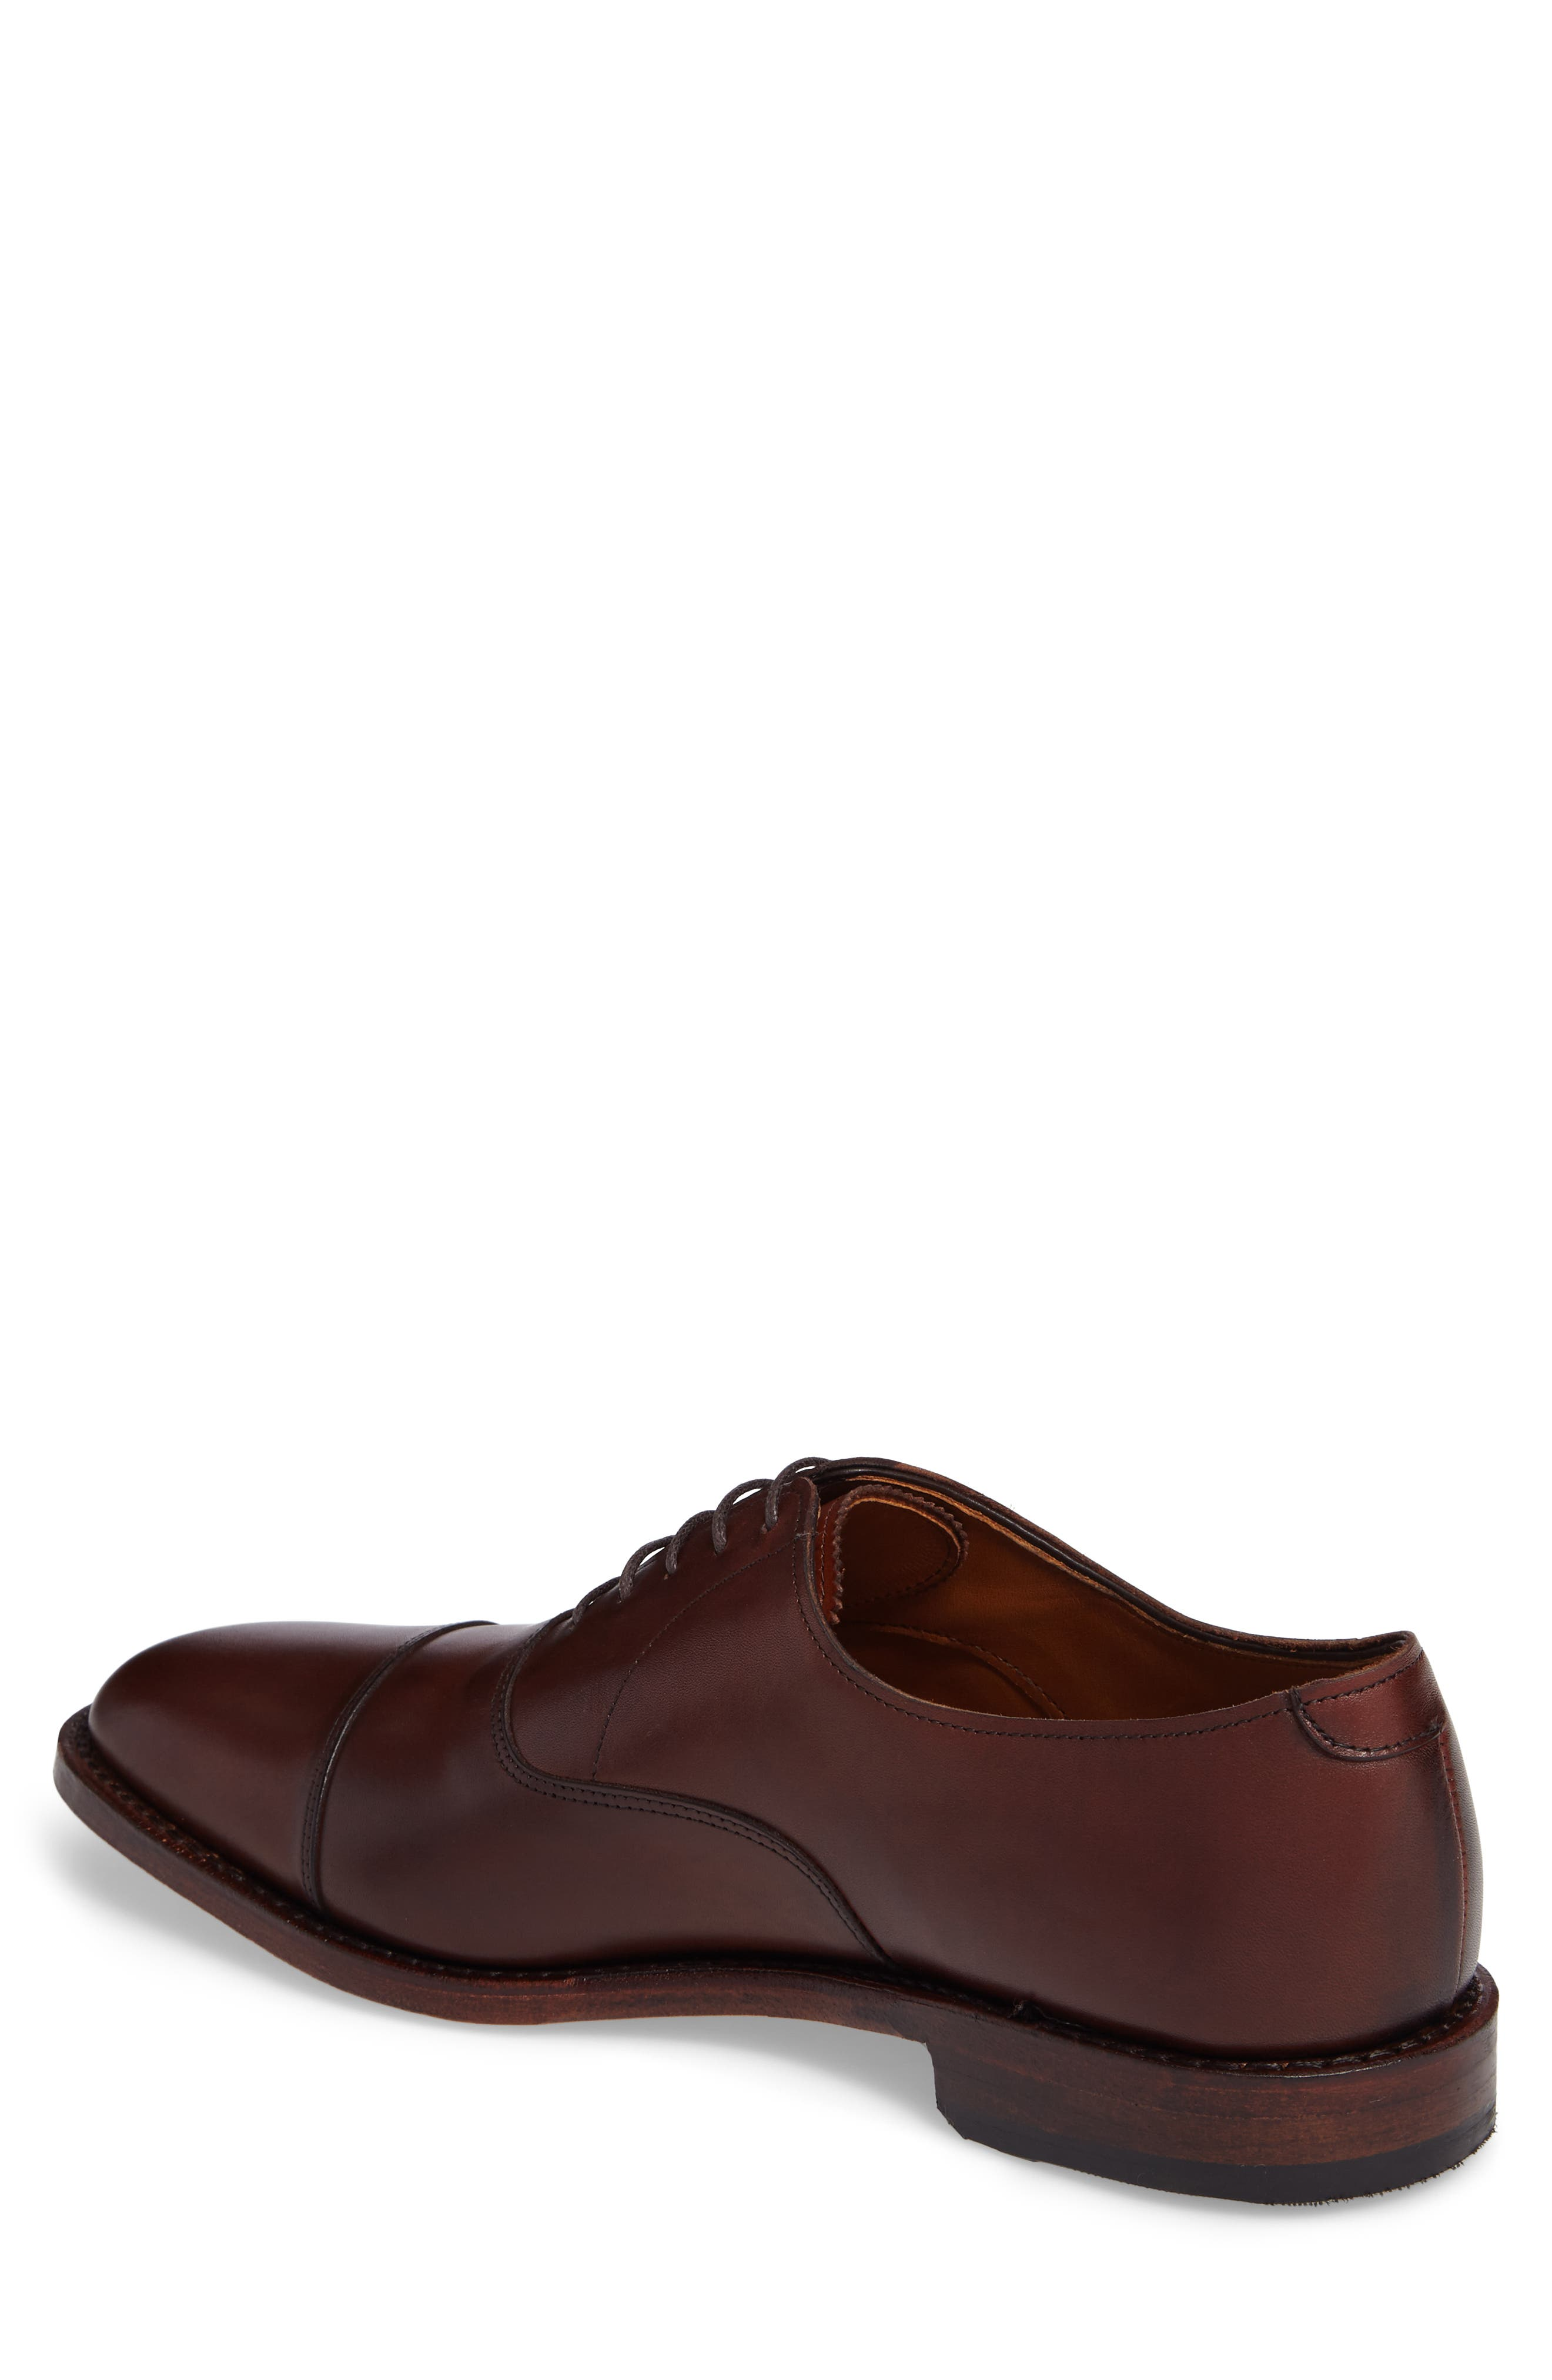 'Exchange Place' Cap Toe Oxford,                             Alternate thumbnail 2, color,                             Dark Chili Leather